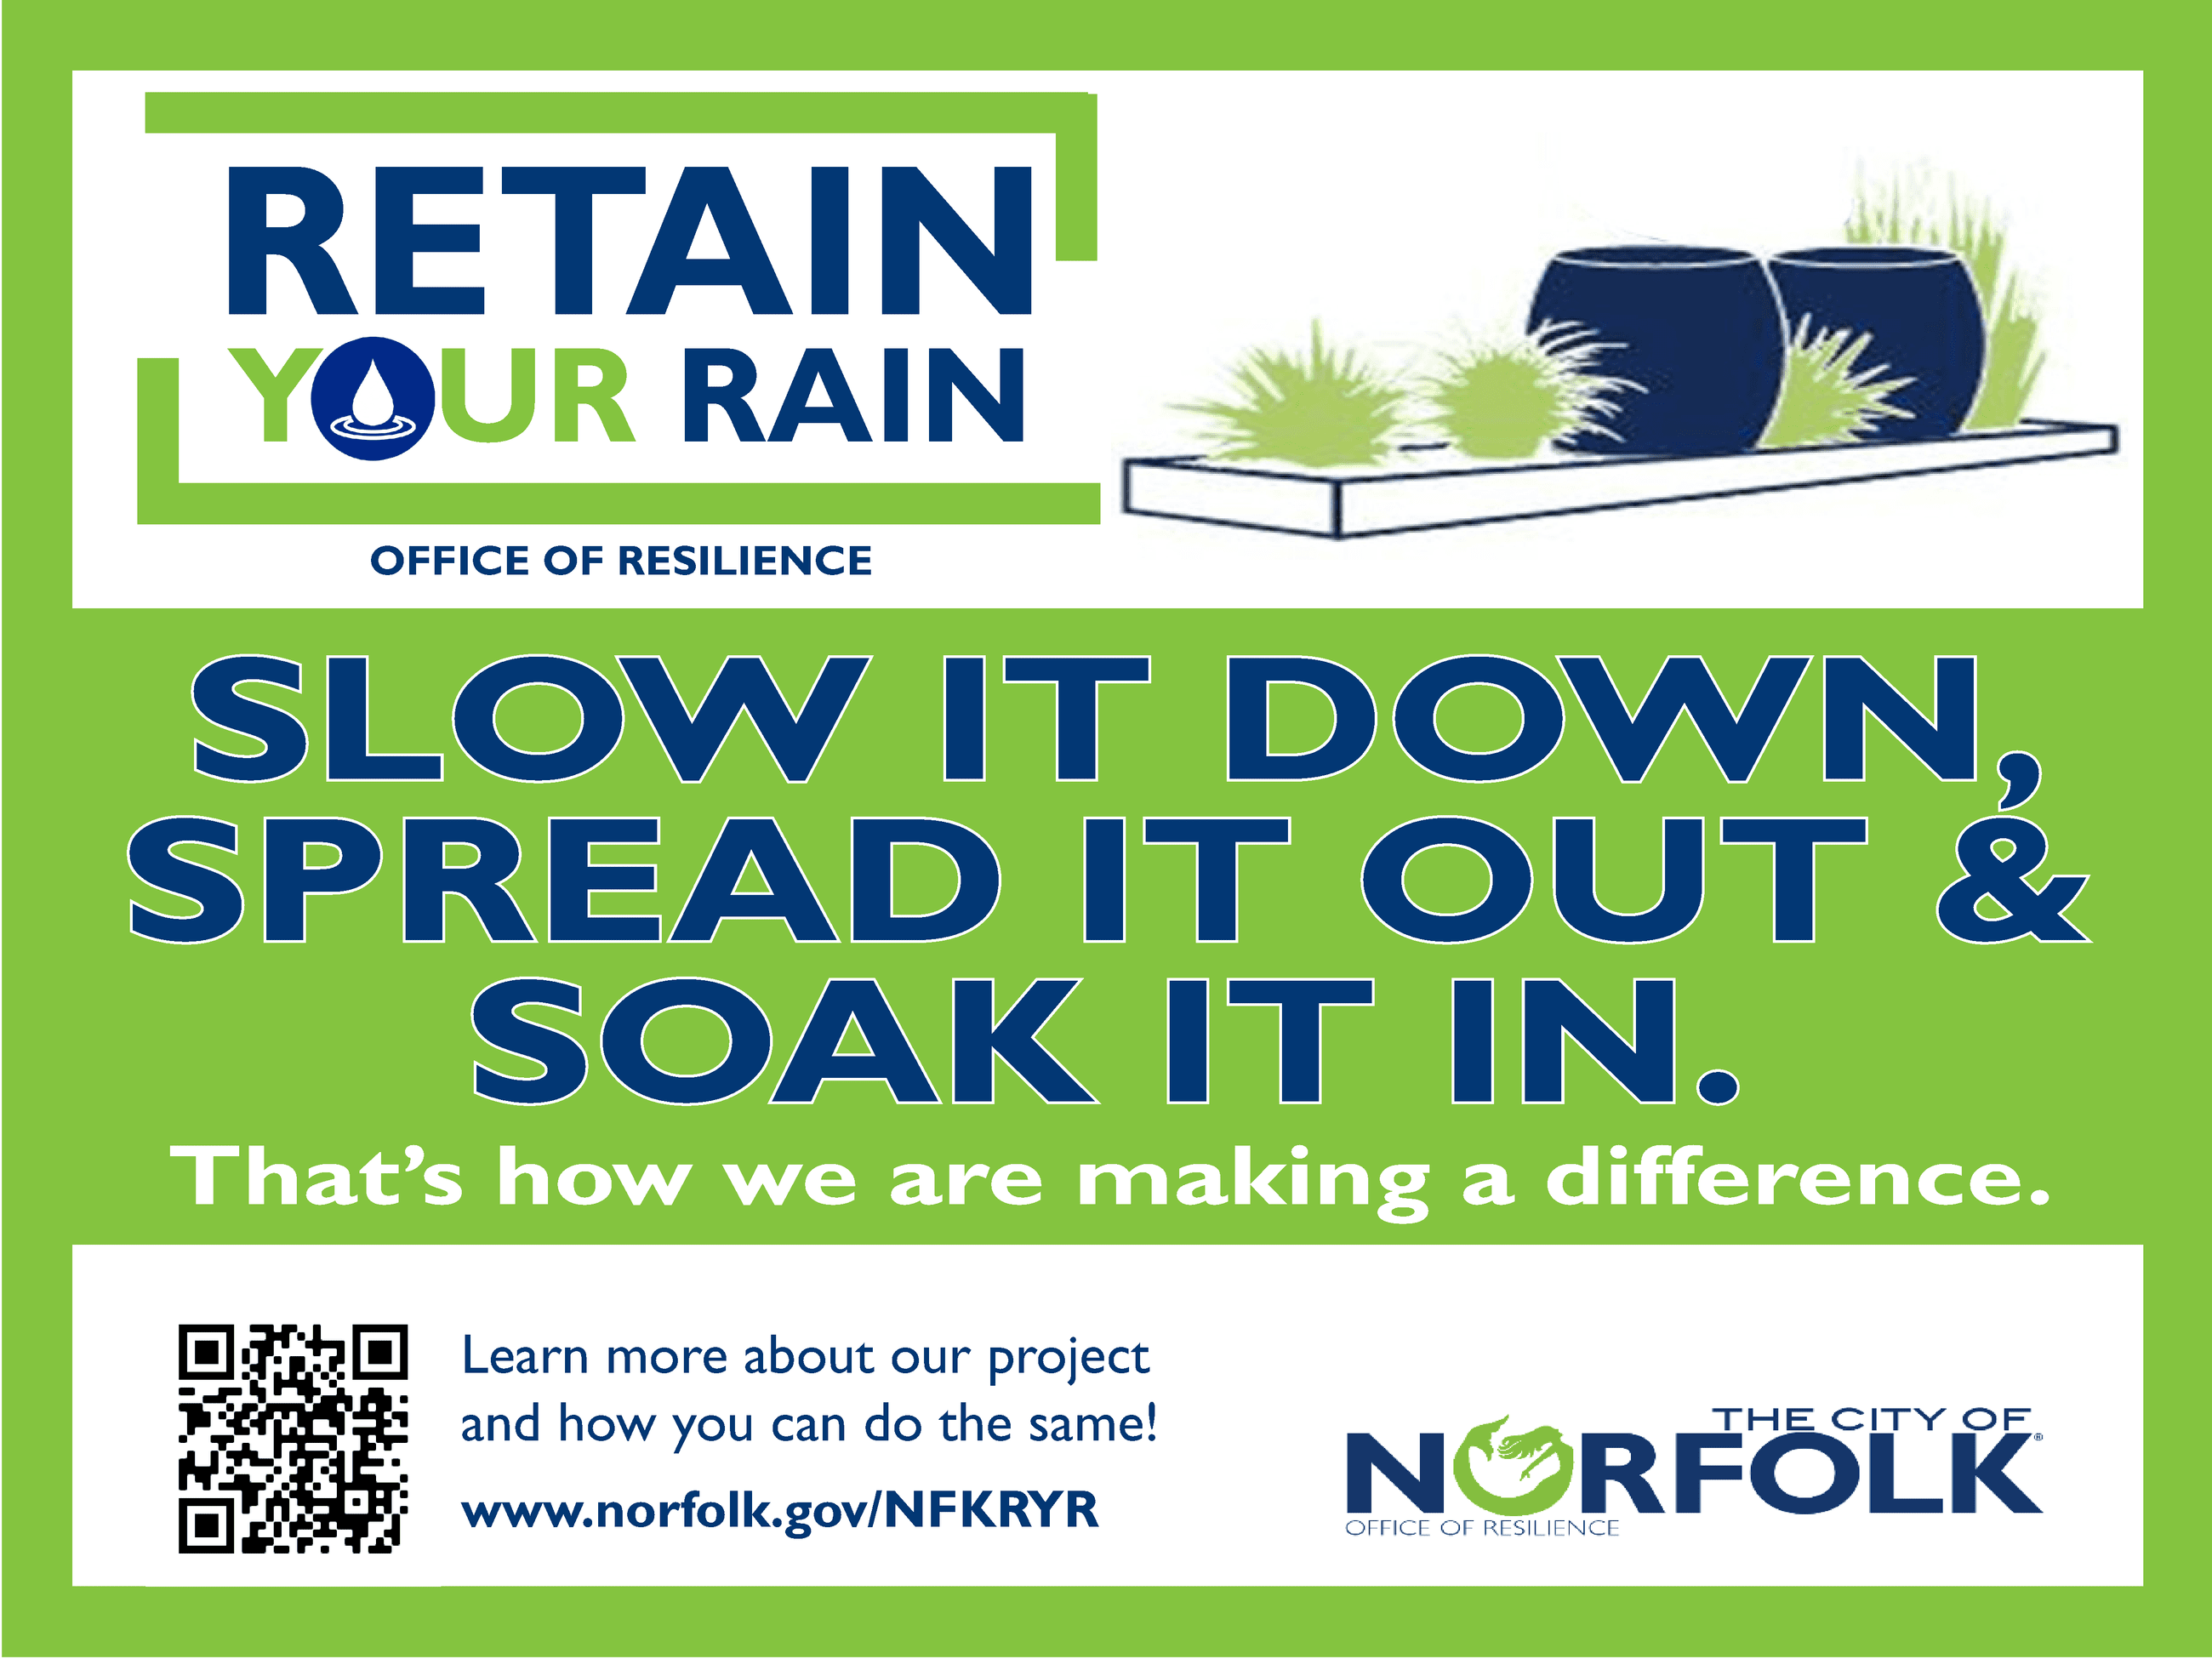 Retain Your Rain Projects Yard Signs